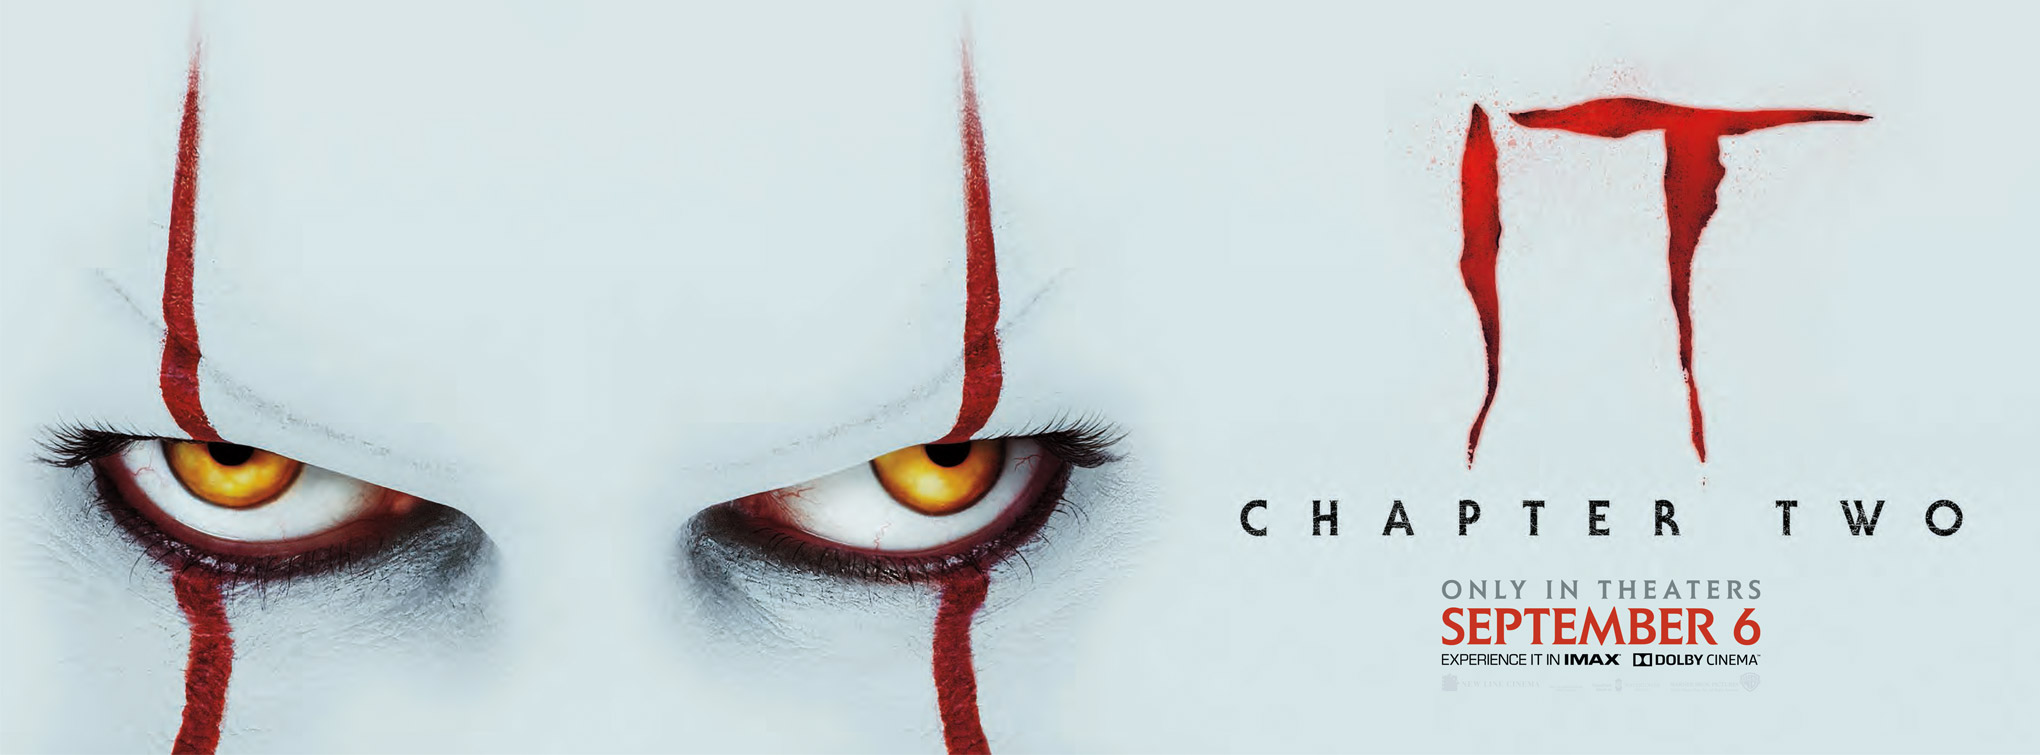 Slider image for It: Chapter Two